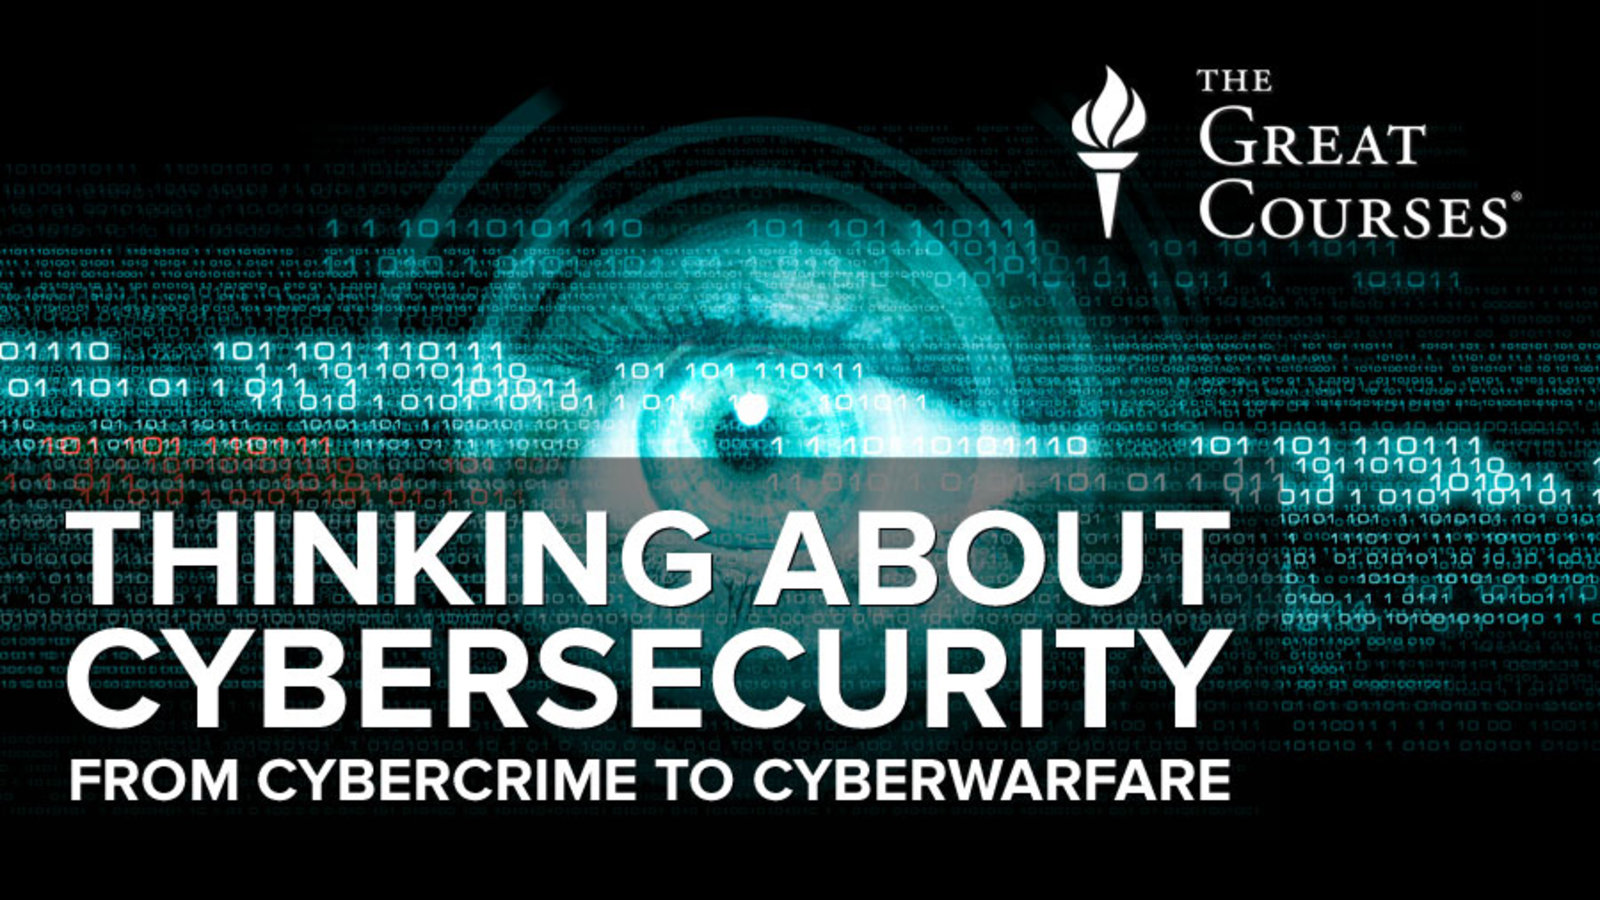 Thinking about Cybersecurity - From Cyber Crime to Cyber Warfare